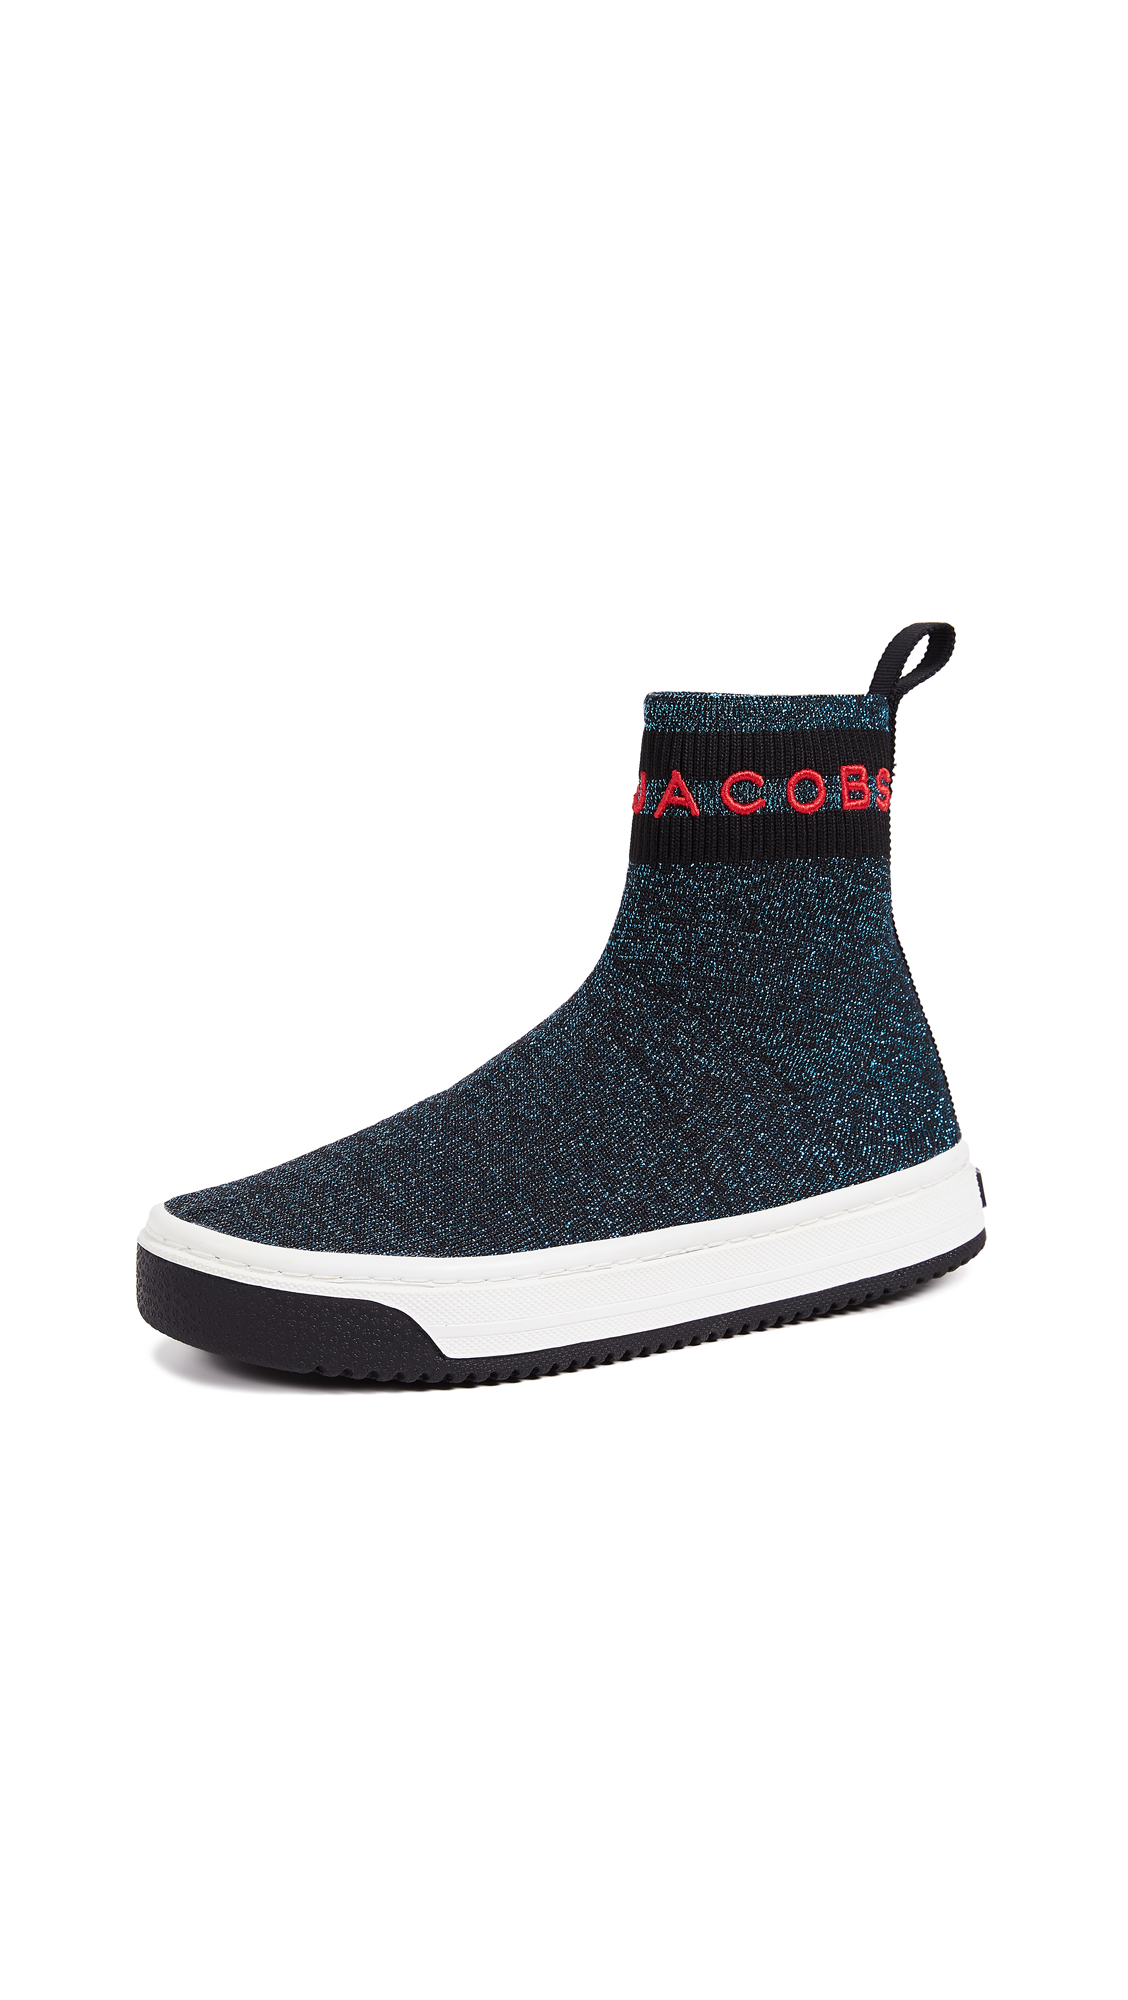 Marc Jacobs Dart Sock Sneakers - Blue Multi